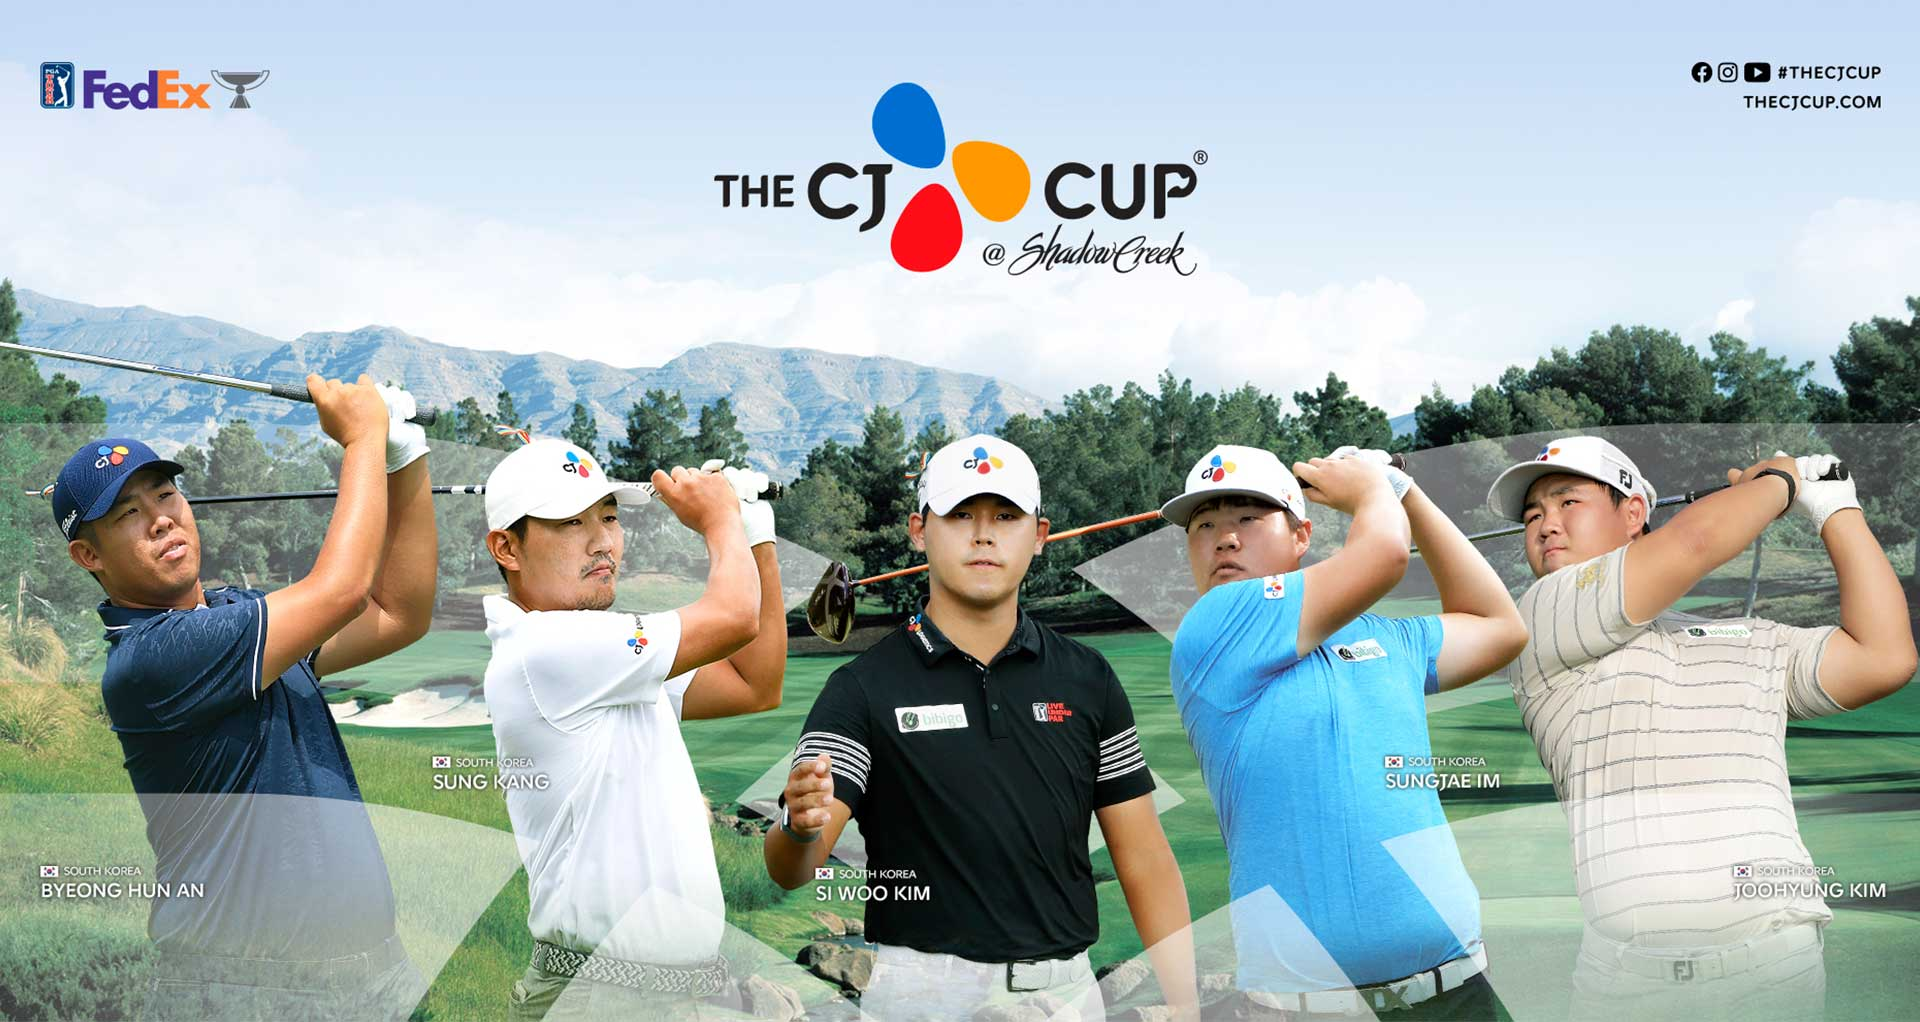 the cj cup SHADOW CREEK UNITED STATES DUSTIN JOHNSON/ SPAIN JON RAHN/ WNITED STATES JUSTIN THOMAS/ NORTHERN IRELAND RORY MCILROY/ UNITED STATES BRYSON DECHAMBEAU